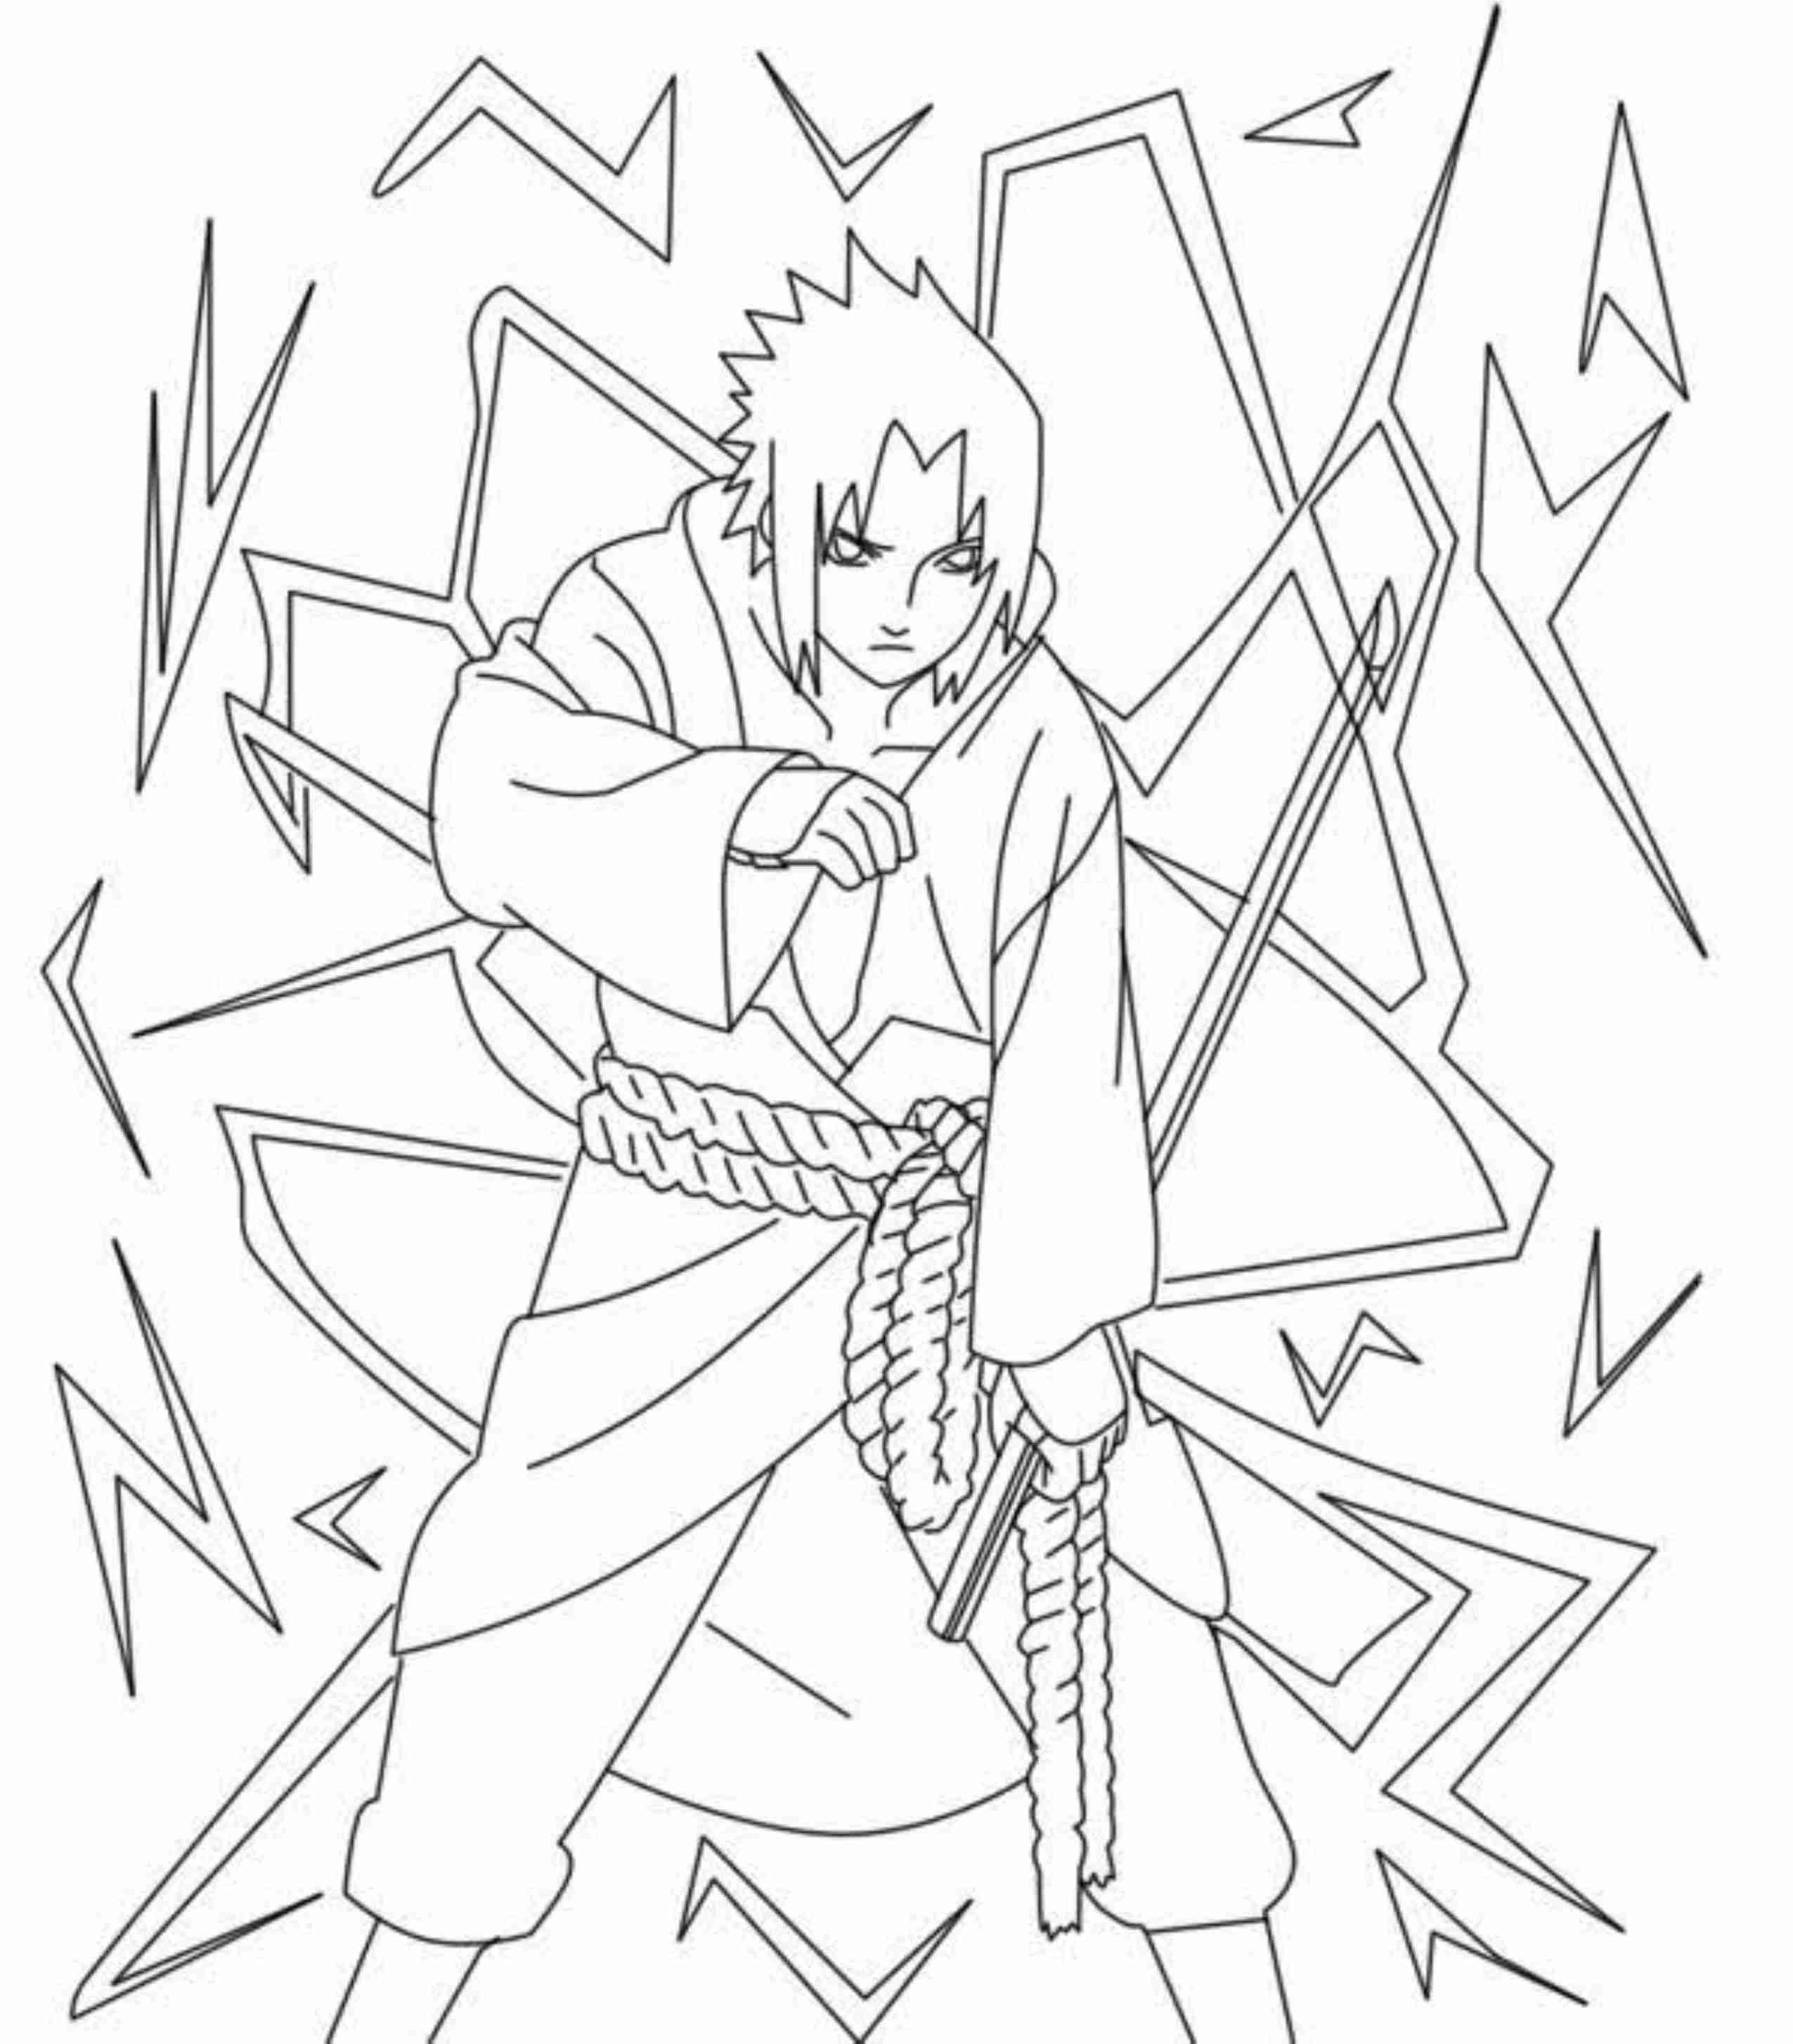 D9 86 D8 A7 D8 B1 D9 88 D8 AA D9 88 D8 8C  D8 AA D9 84 D9 88 D9 8A D9 86 also Desenhos Do Naruto Para Colorir also Obito Uchiha 632334212 likewise Naruto Lineart 266101836 also Anbu Kakashi Chibi 305176141. on kakashi coloring pages